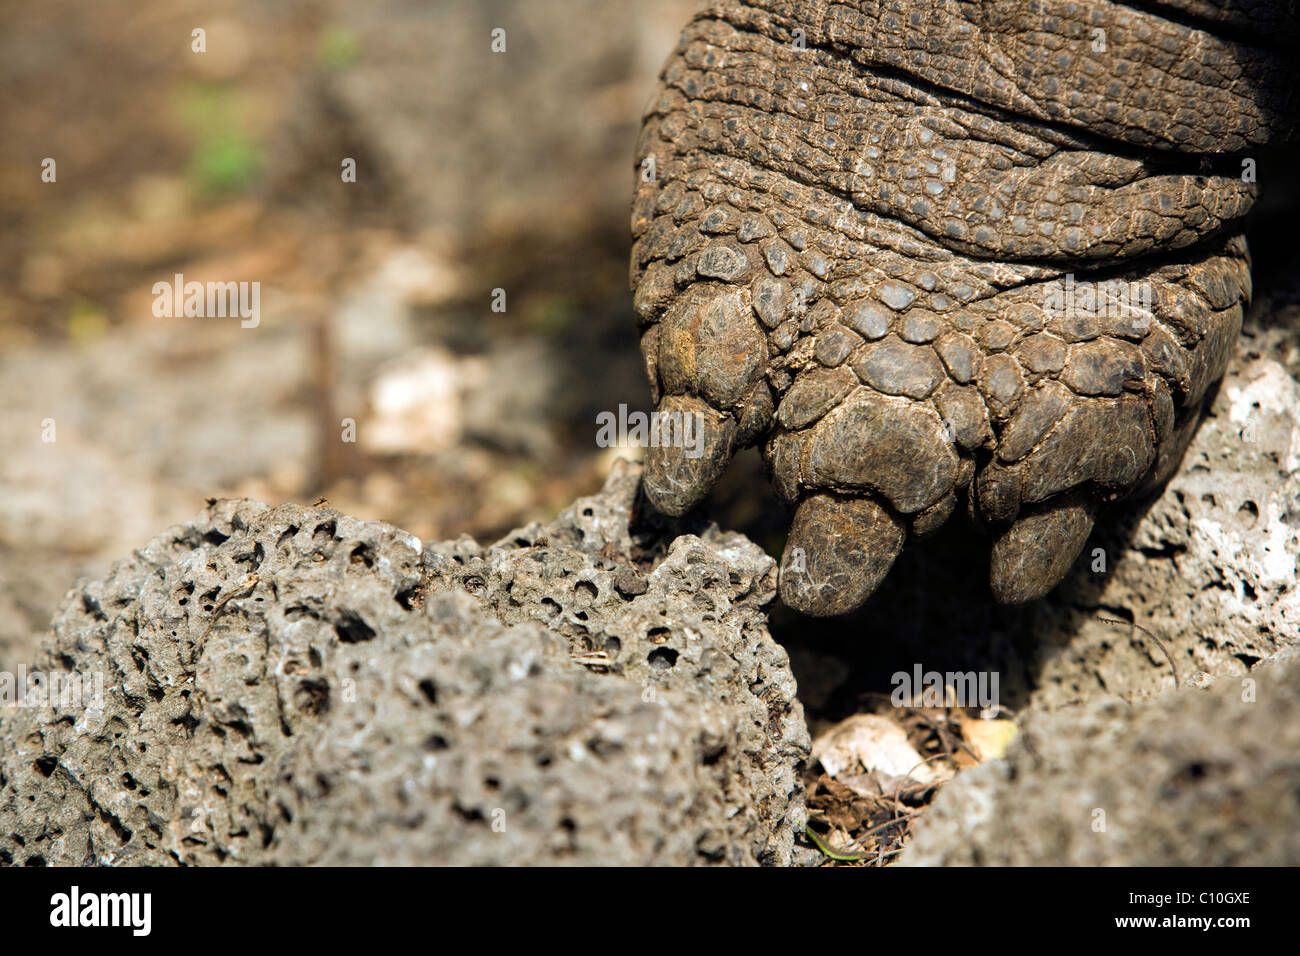 Close-up of Foot of Giant Tortoise (Captive) - Charles Darwin Research Station - Santa Cruz Island, Galapagos Islands, - Stock Image